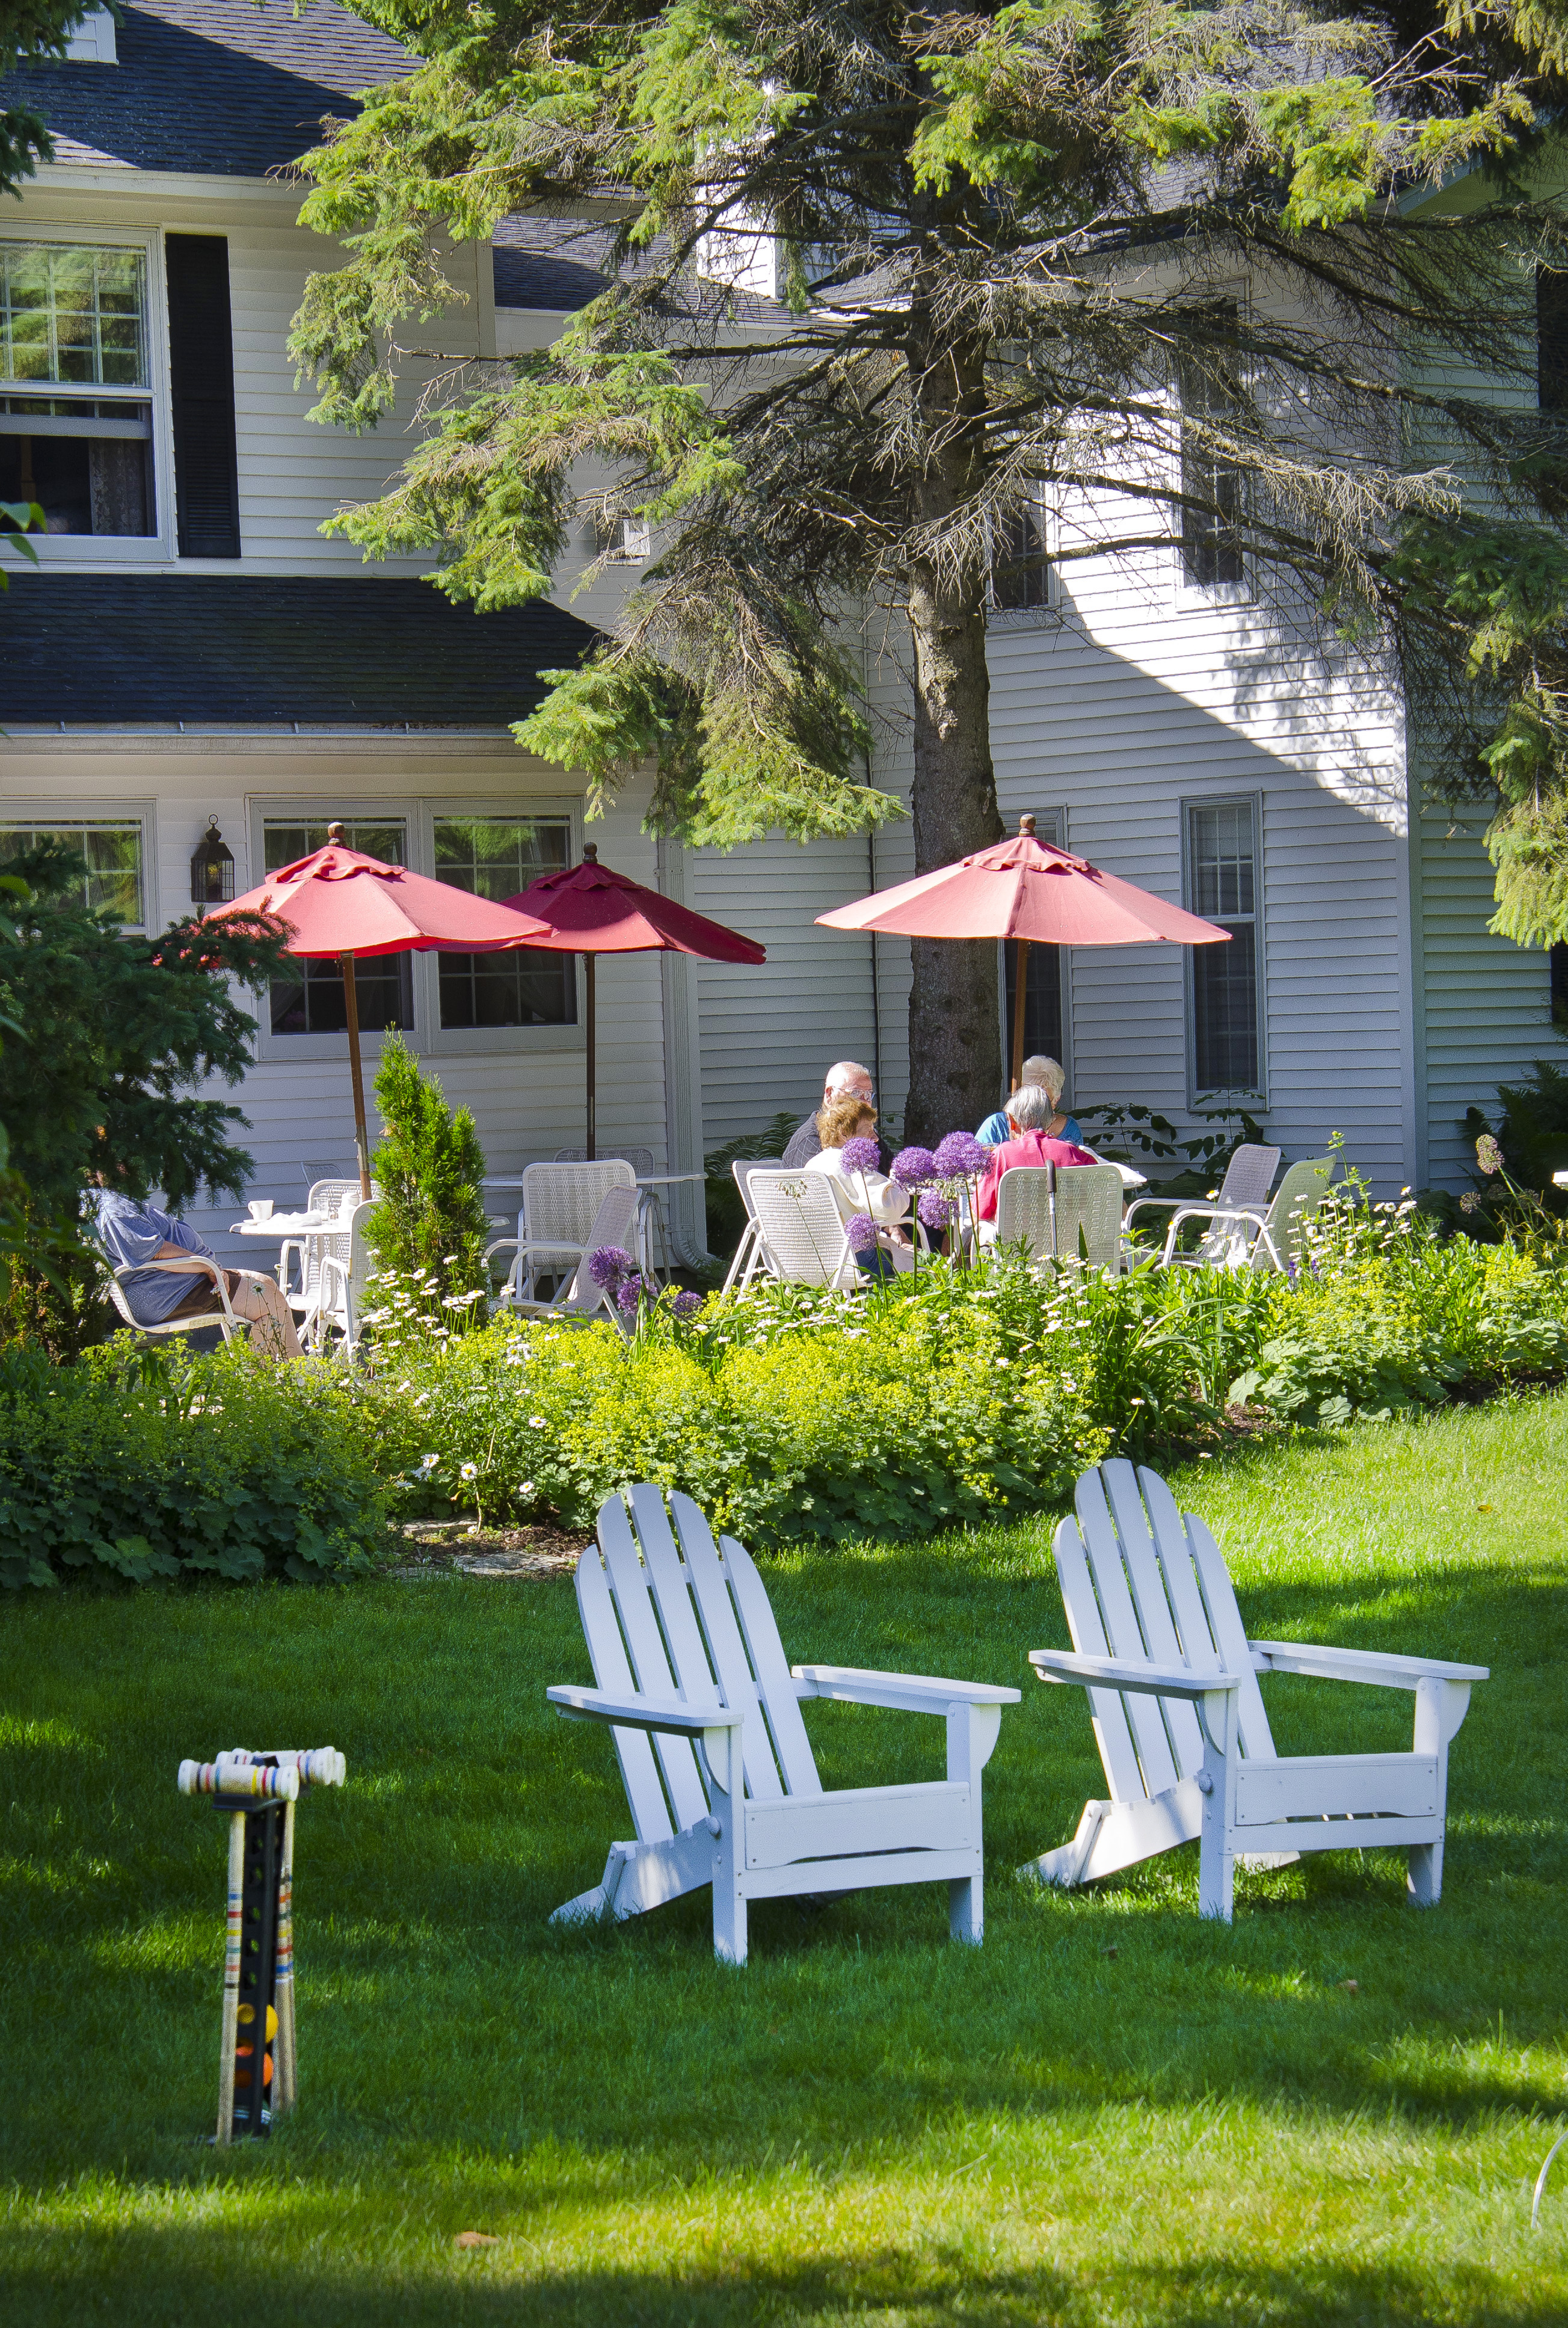 Last Minute Lodging In Door County Wi May 8 10 2015 Mother39s. Bar Harbor Info Things To Do Eagle Harbor Inn   appos us